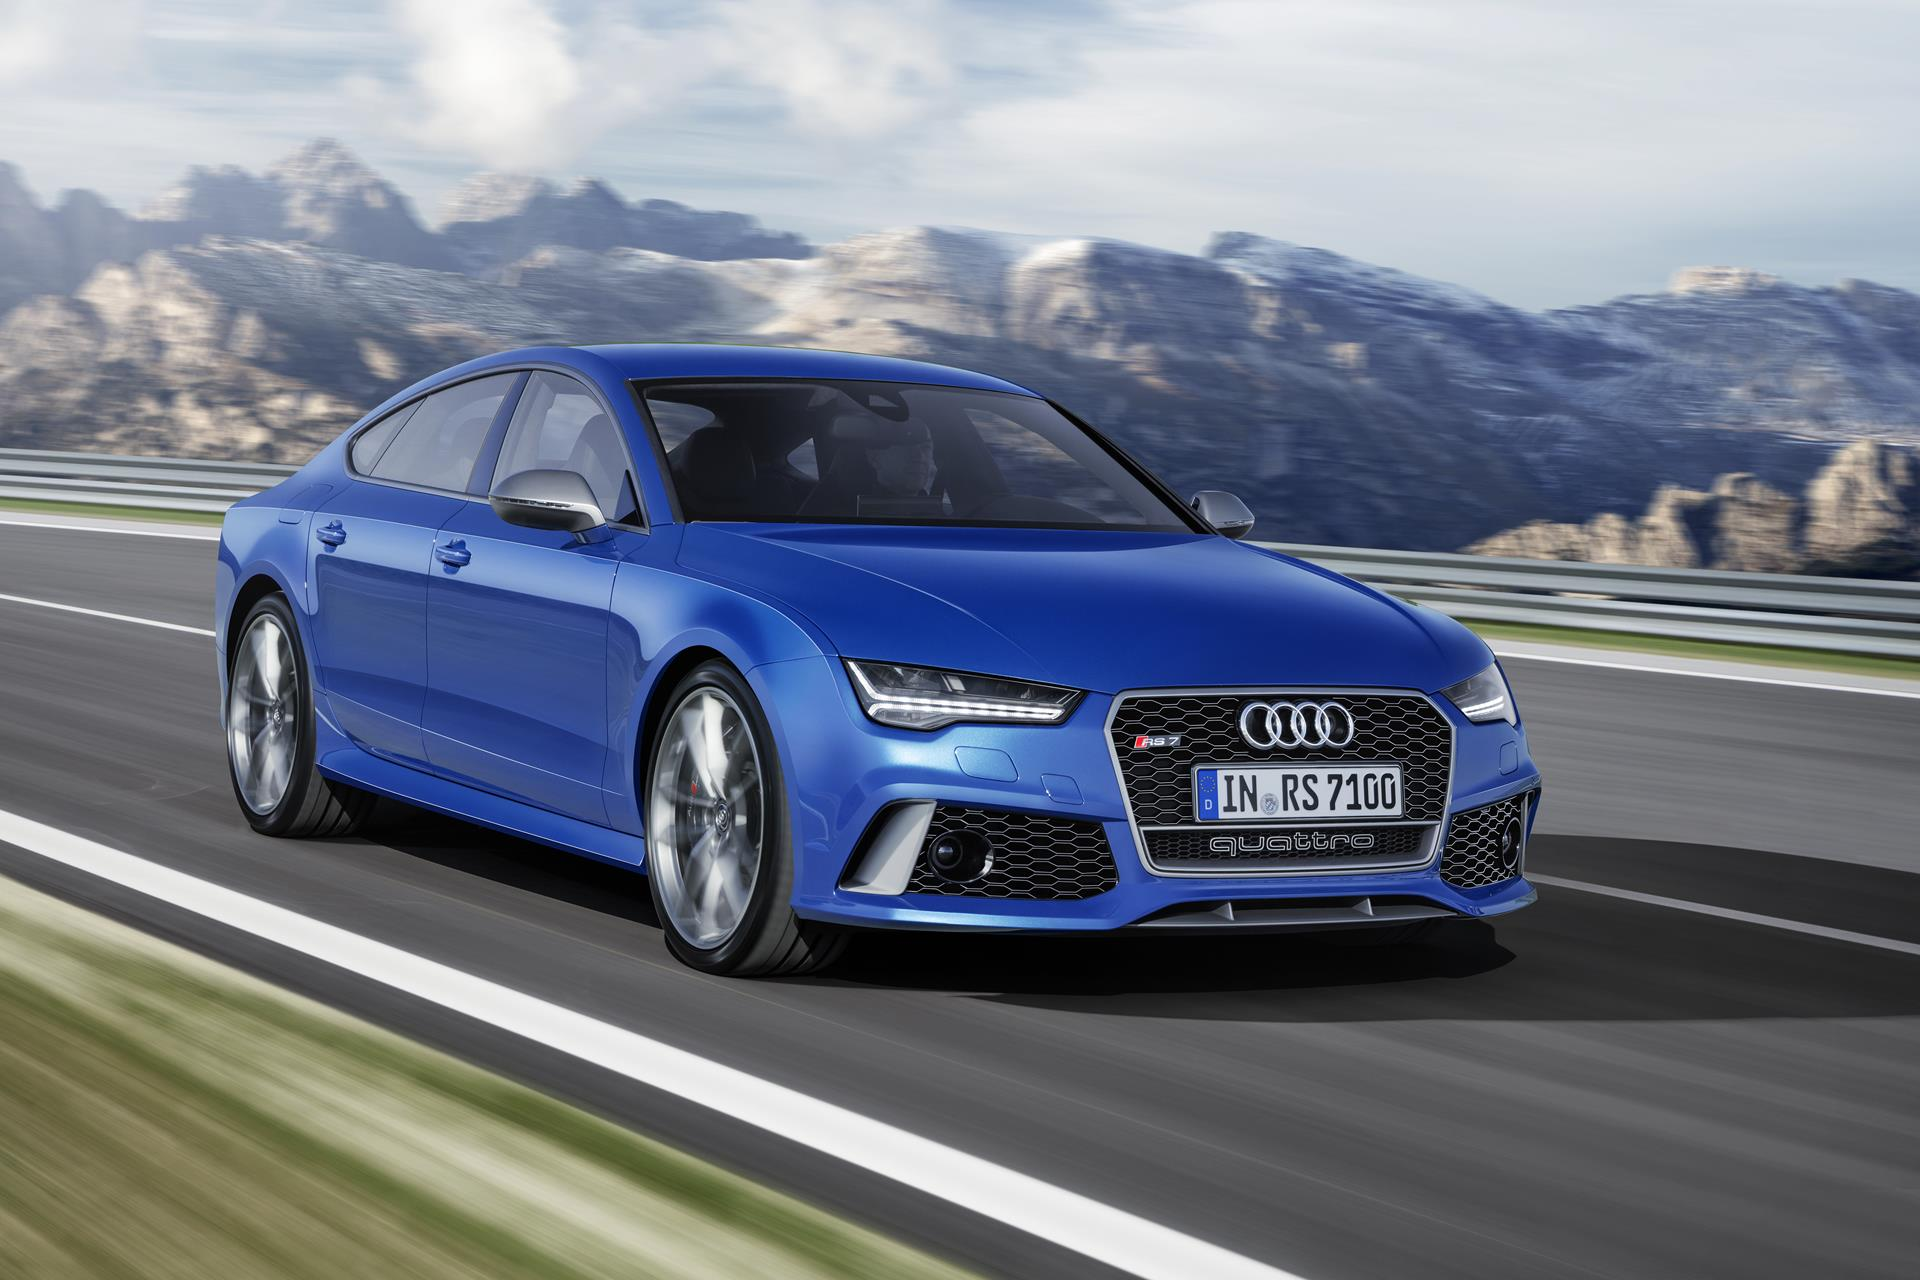 2016 Audi RS 7 Sportback Performance